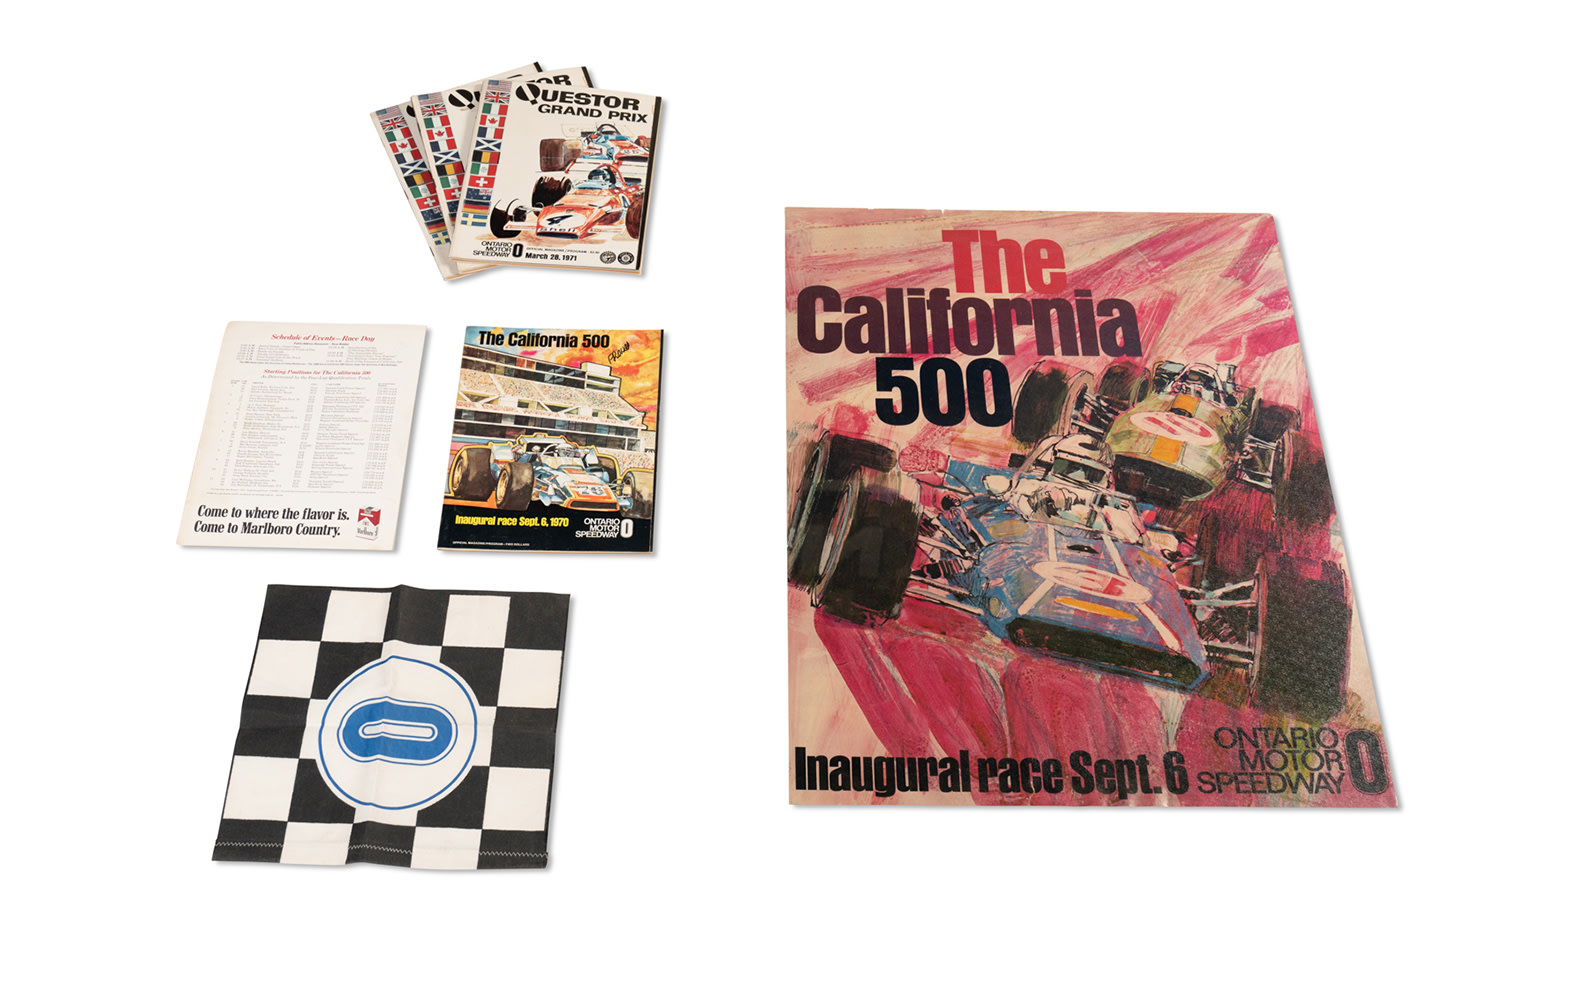 Assorted Programs, Poster, and Flag for Races at the Ontario Motor Speedway, c. 1970–1971